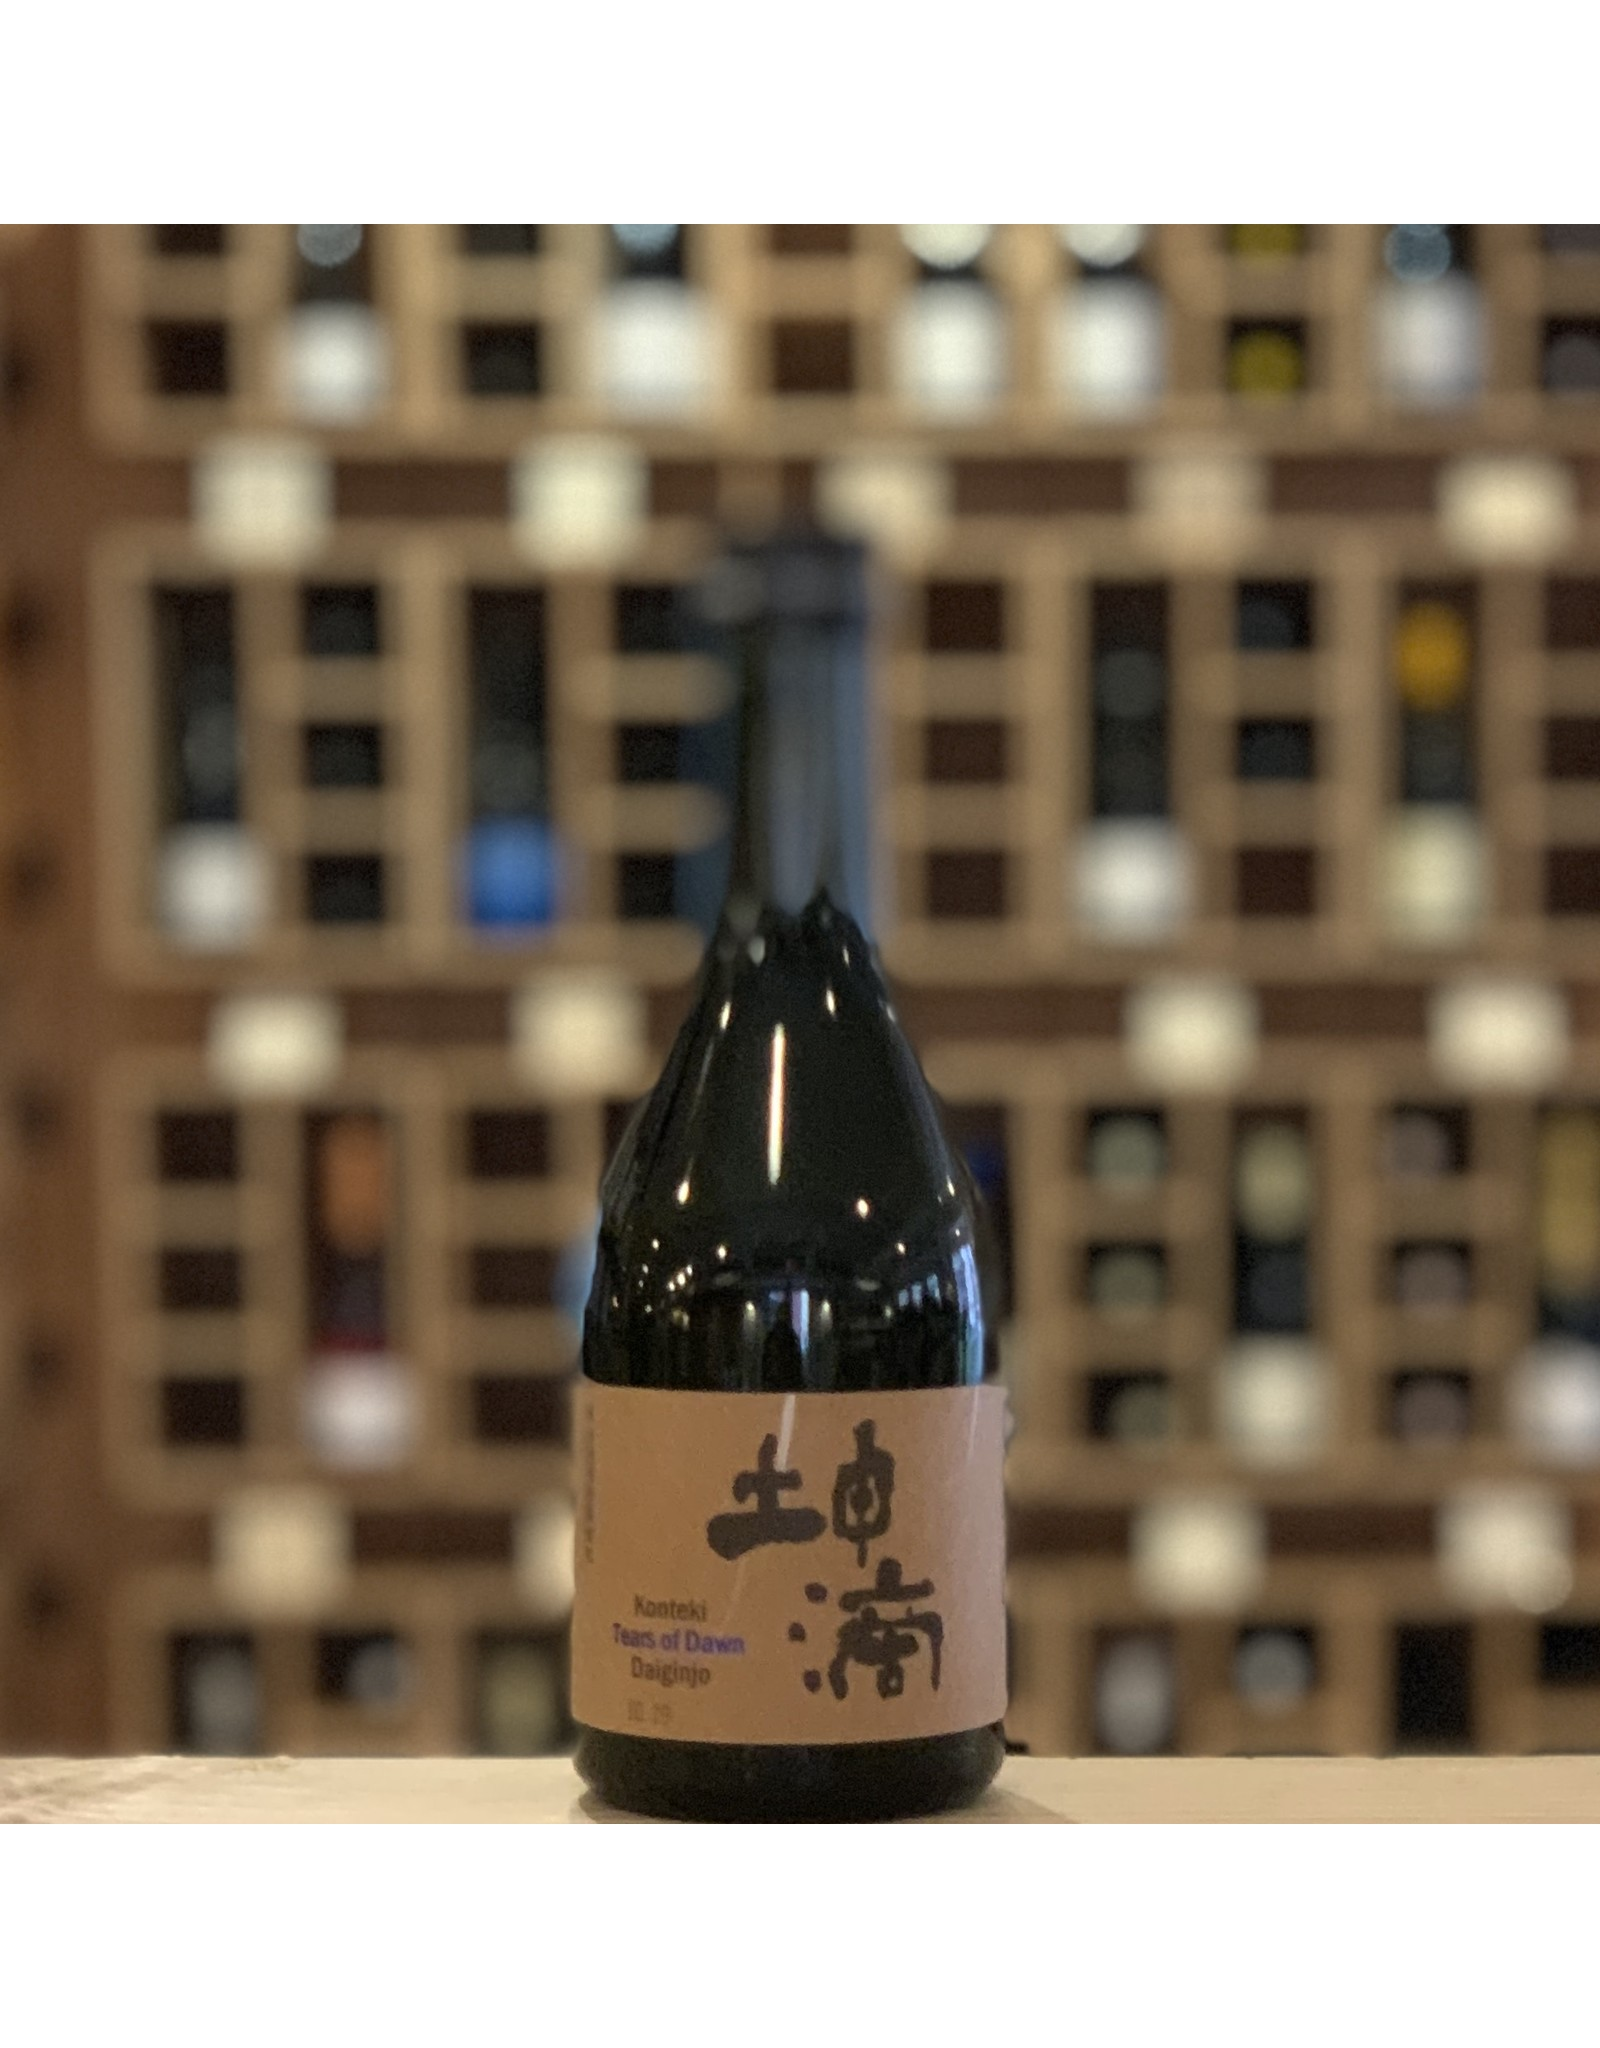 "Konteki ""Tears of Dawn"" Daiginjo 300ml - Kyoto, Japan"